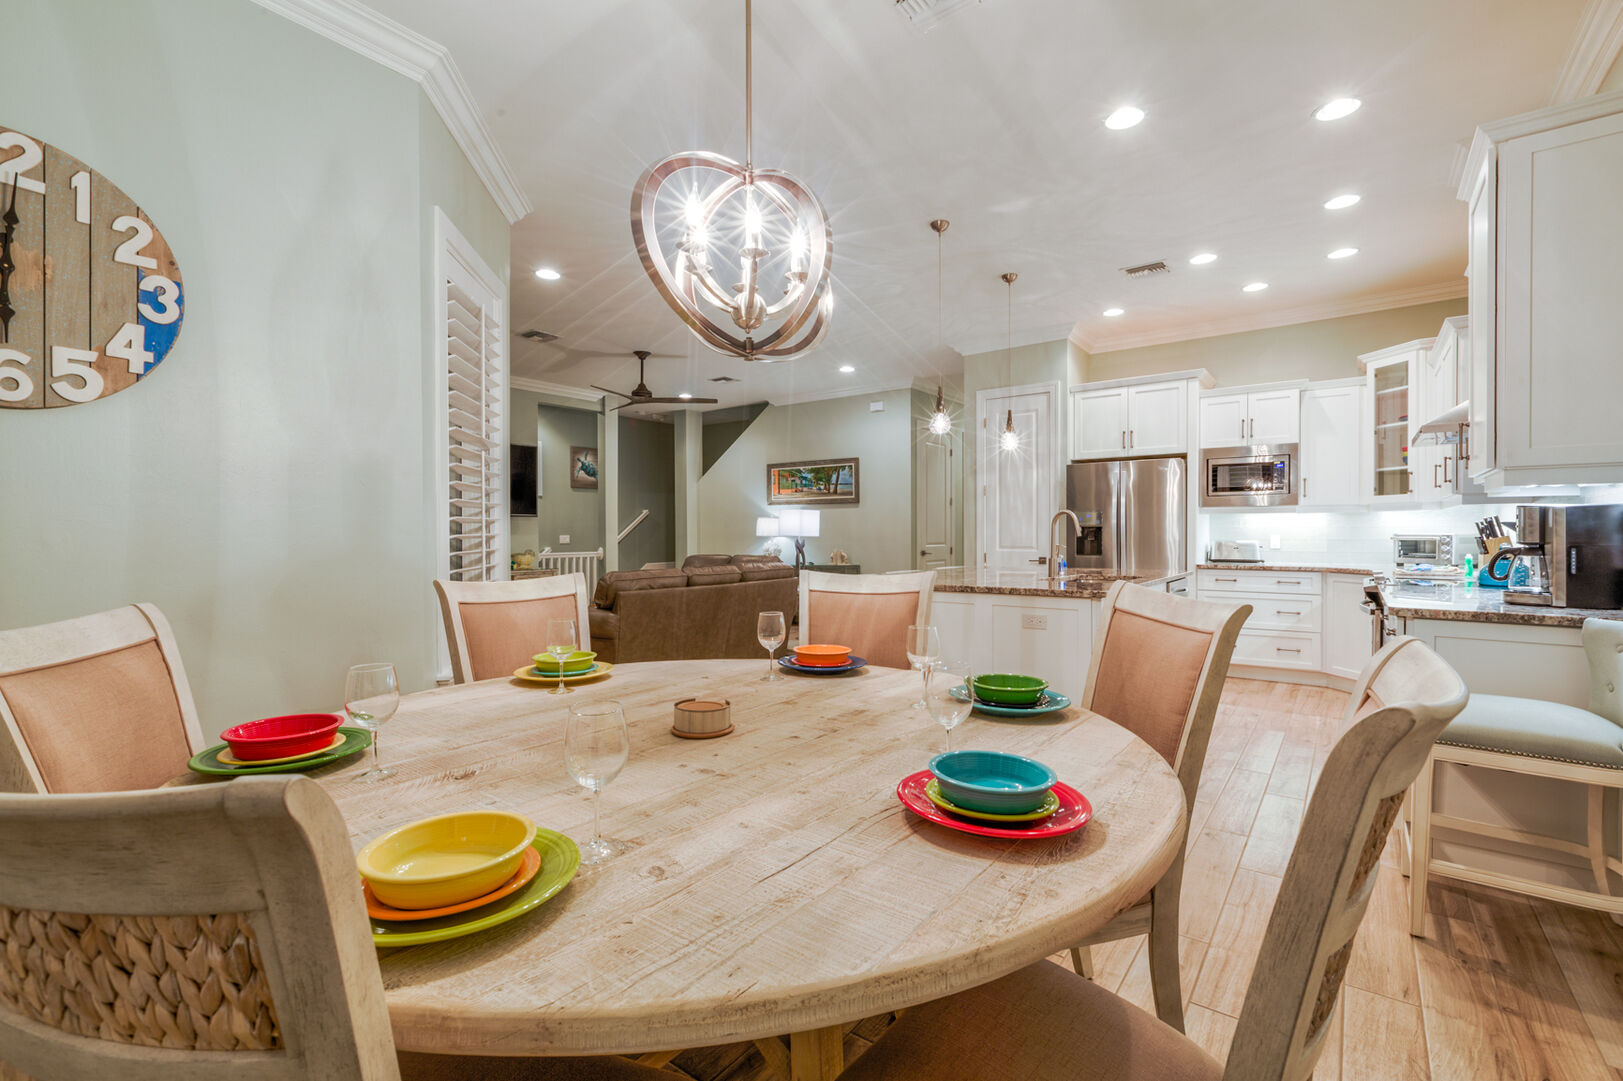 Dining area with a large round table, ample seating, and close proximity to the kitchen.